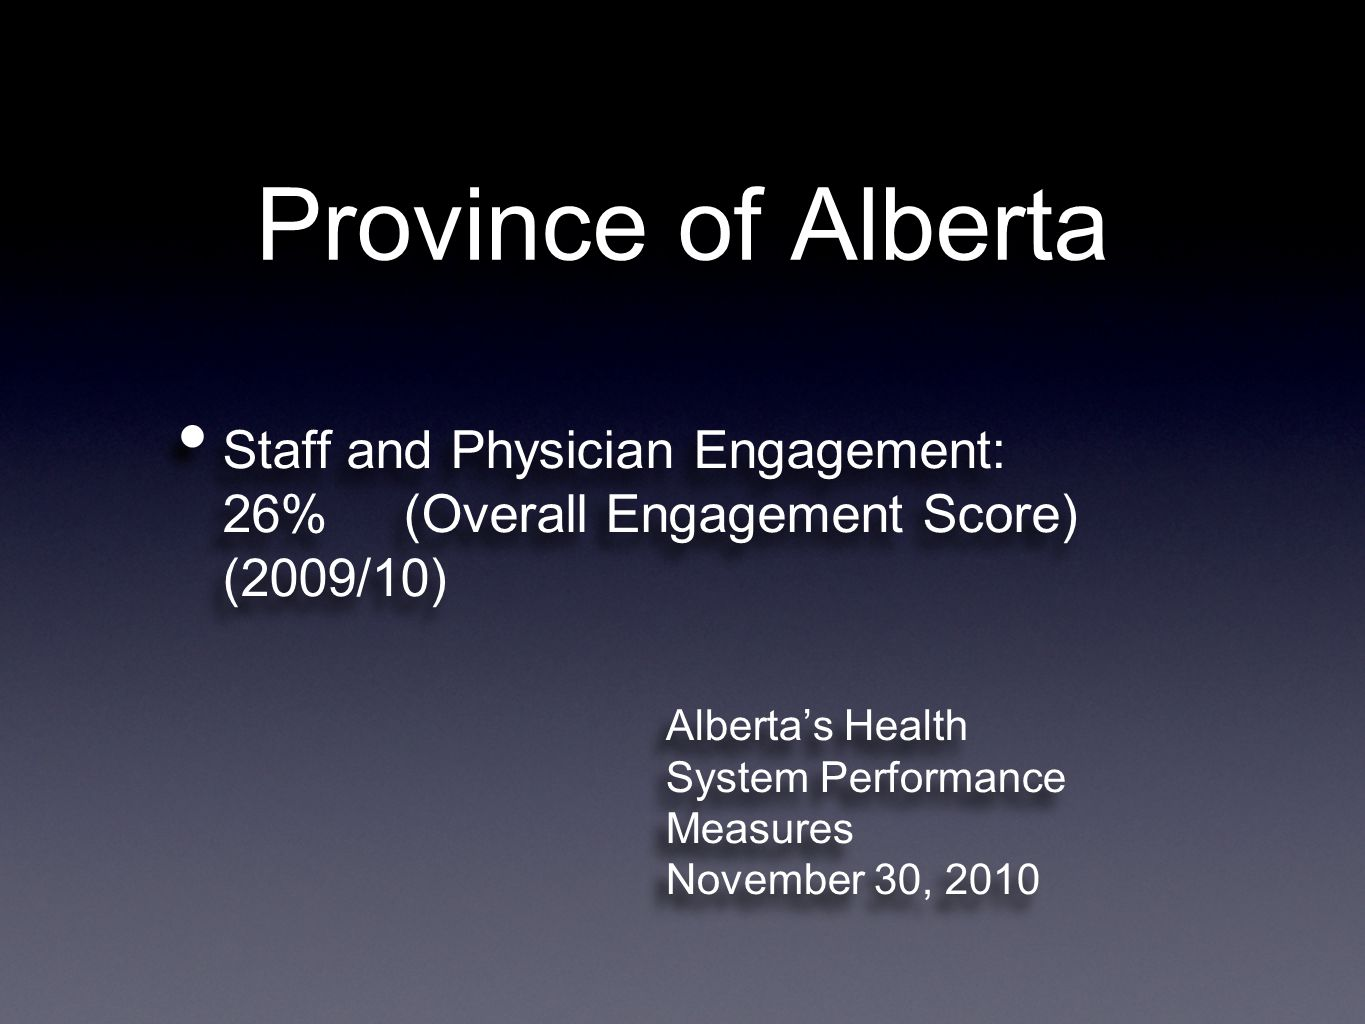 Province of Alberta Staff and Physician Engagement: 26% (Overall Engagement Score) (2009/10) Alberta's Health System Performance Measures November 30, 2010 Alberta's Health System Performance Measures November 30, 2010